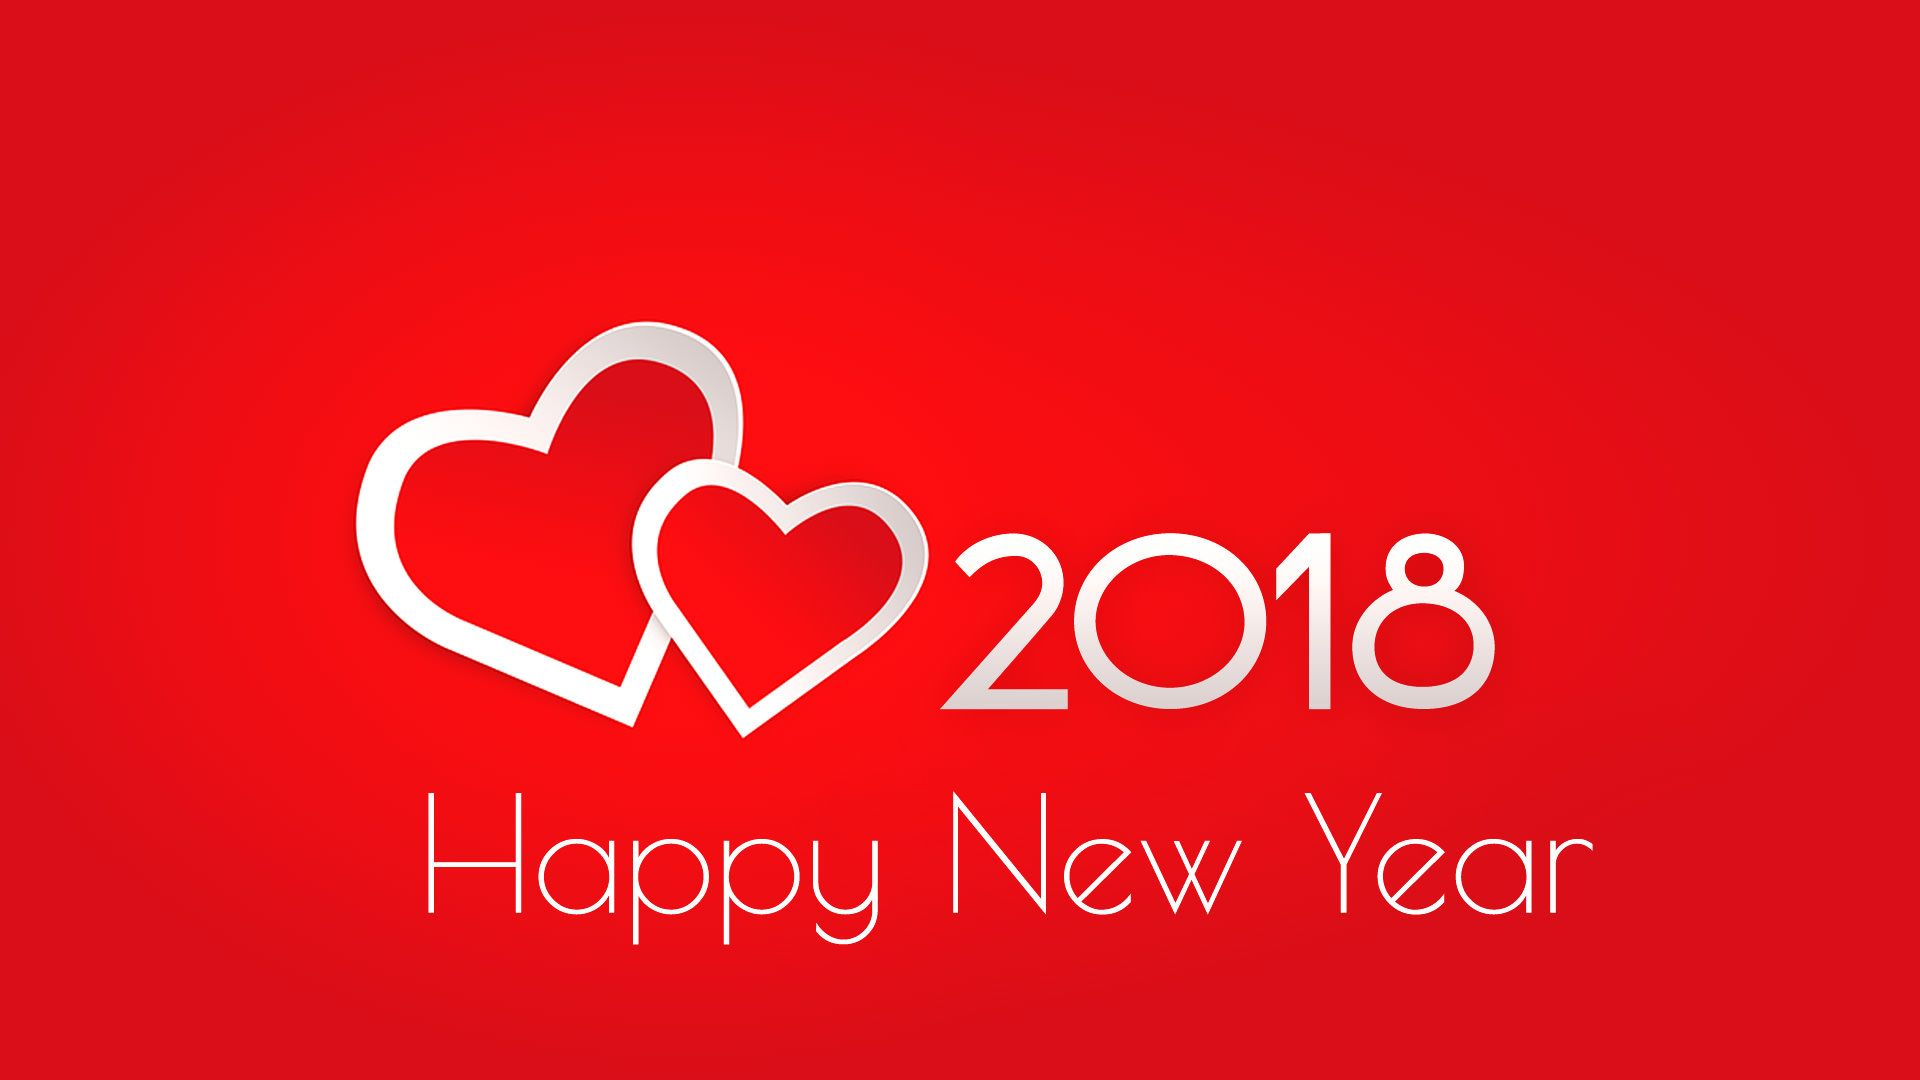 Most Loving And Beautiful Happy New Year 2018 Wallpaper For Lover